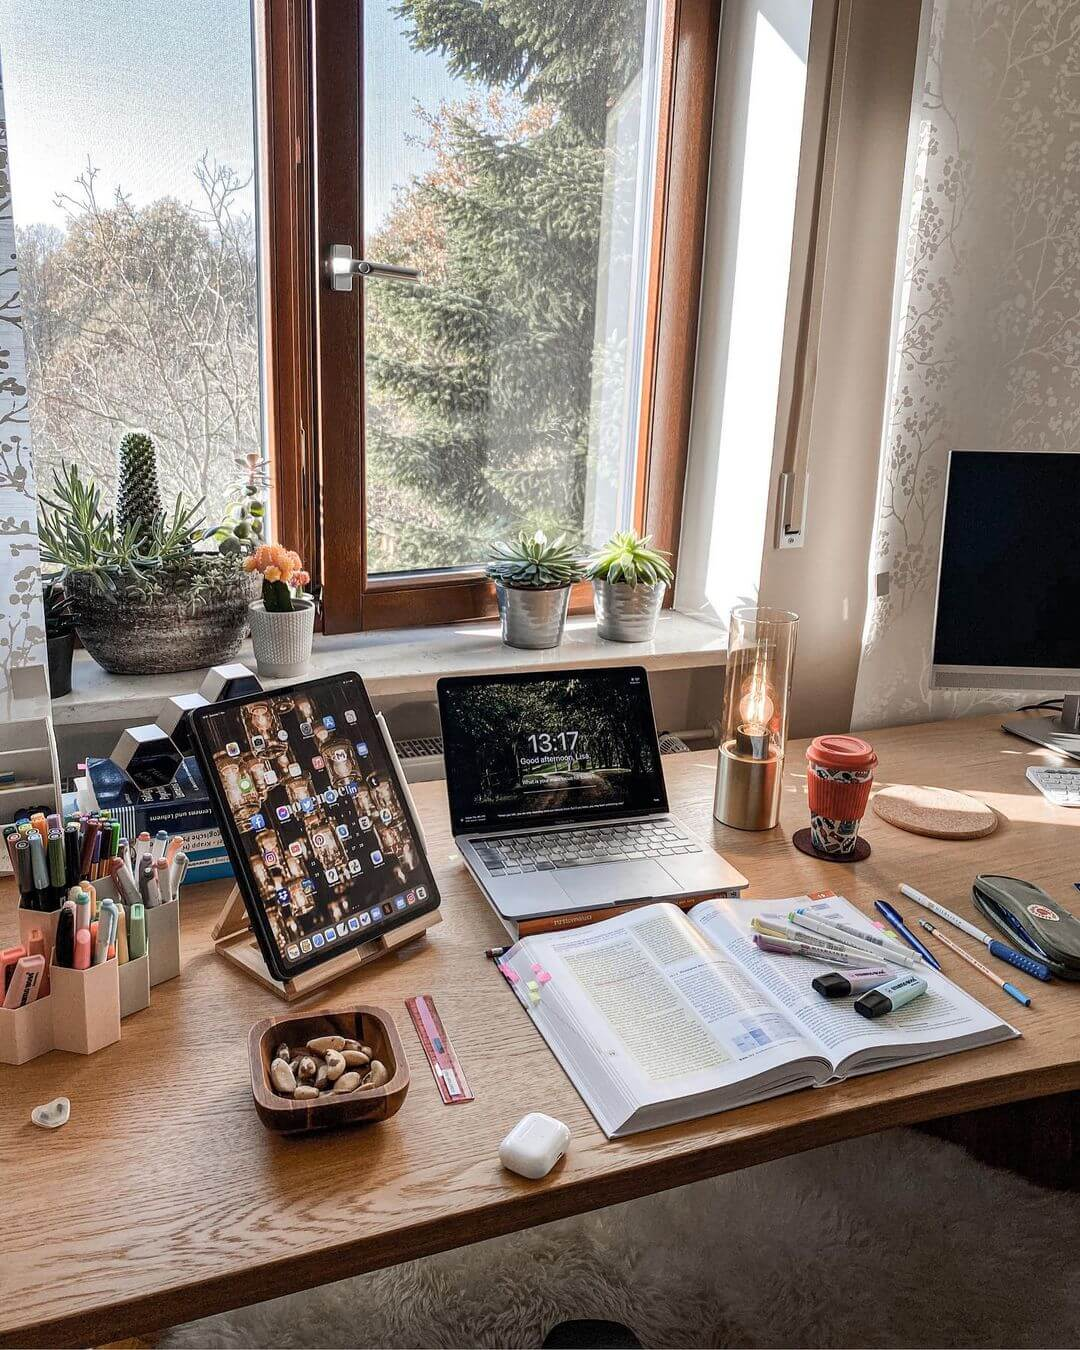 Study room in Germany